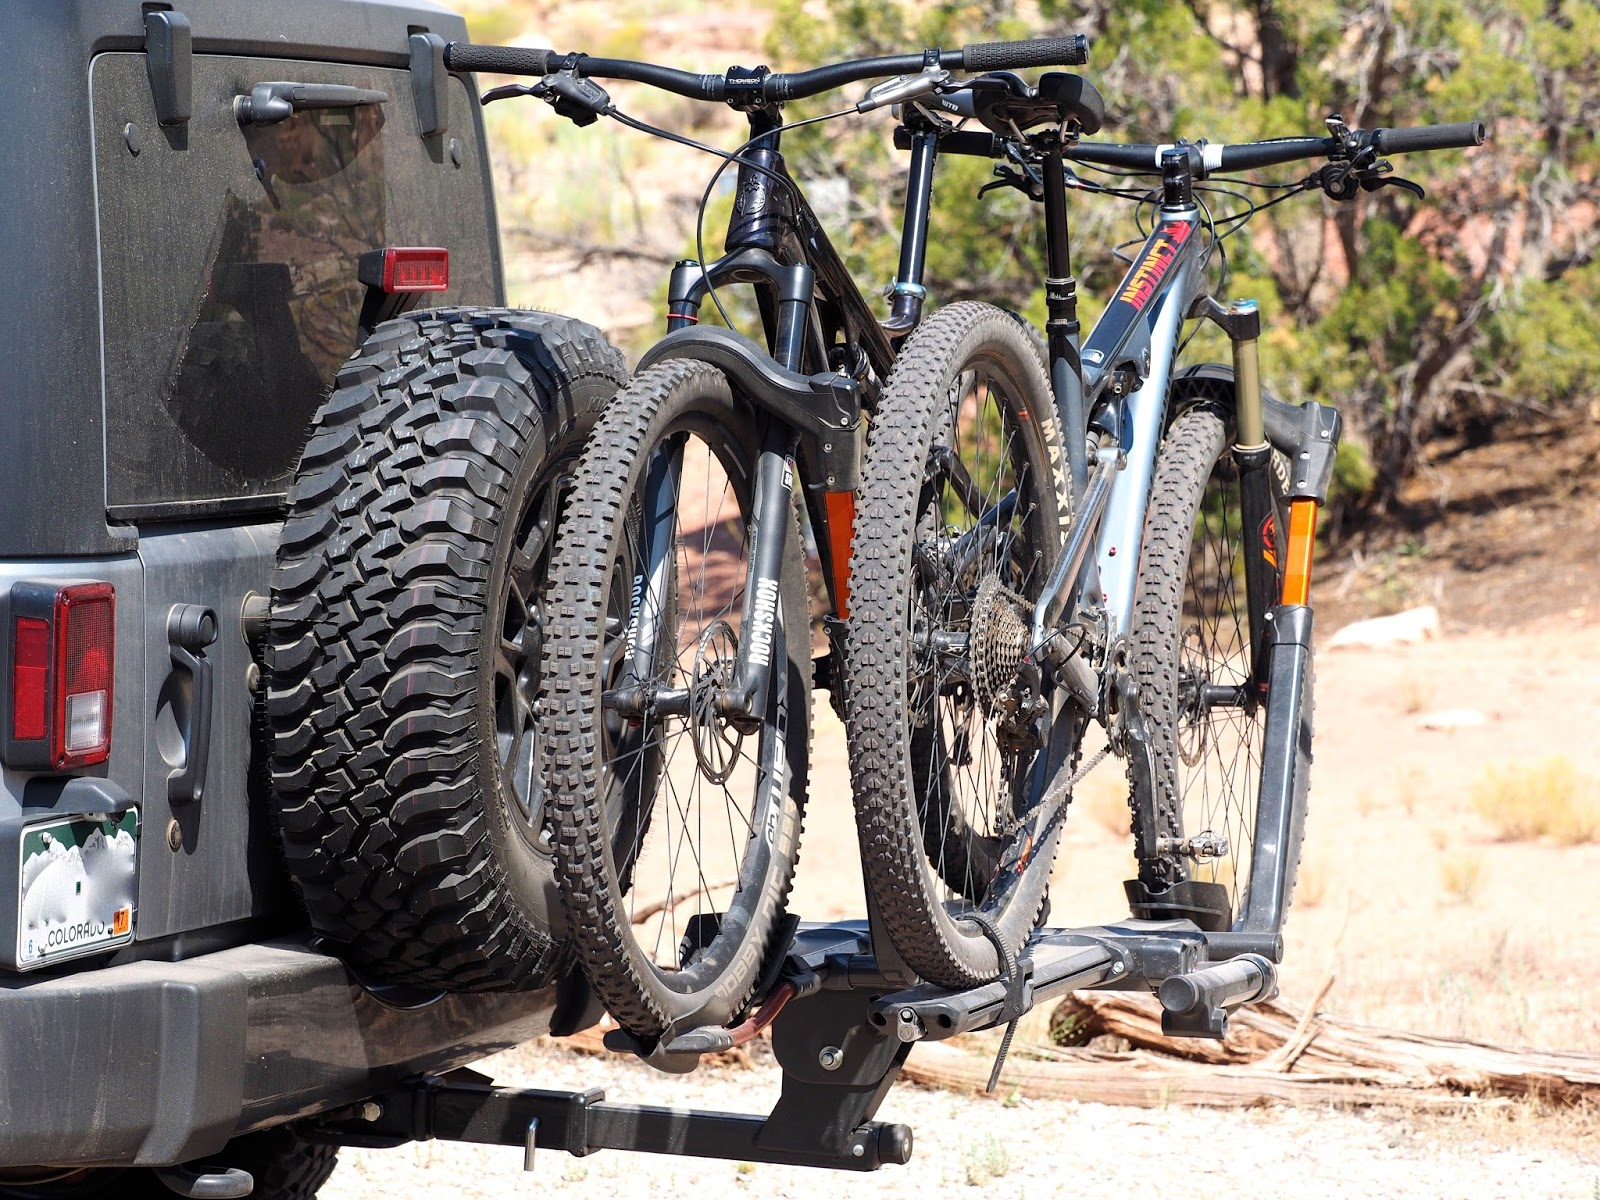 a suv roof racks comments kuat imgur on need i bike mtb recommendation for rack or go r com my do